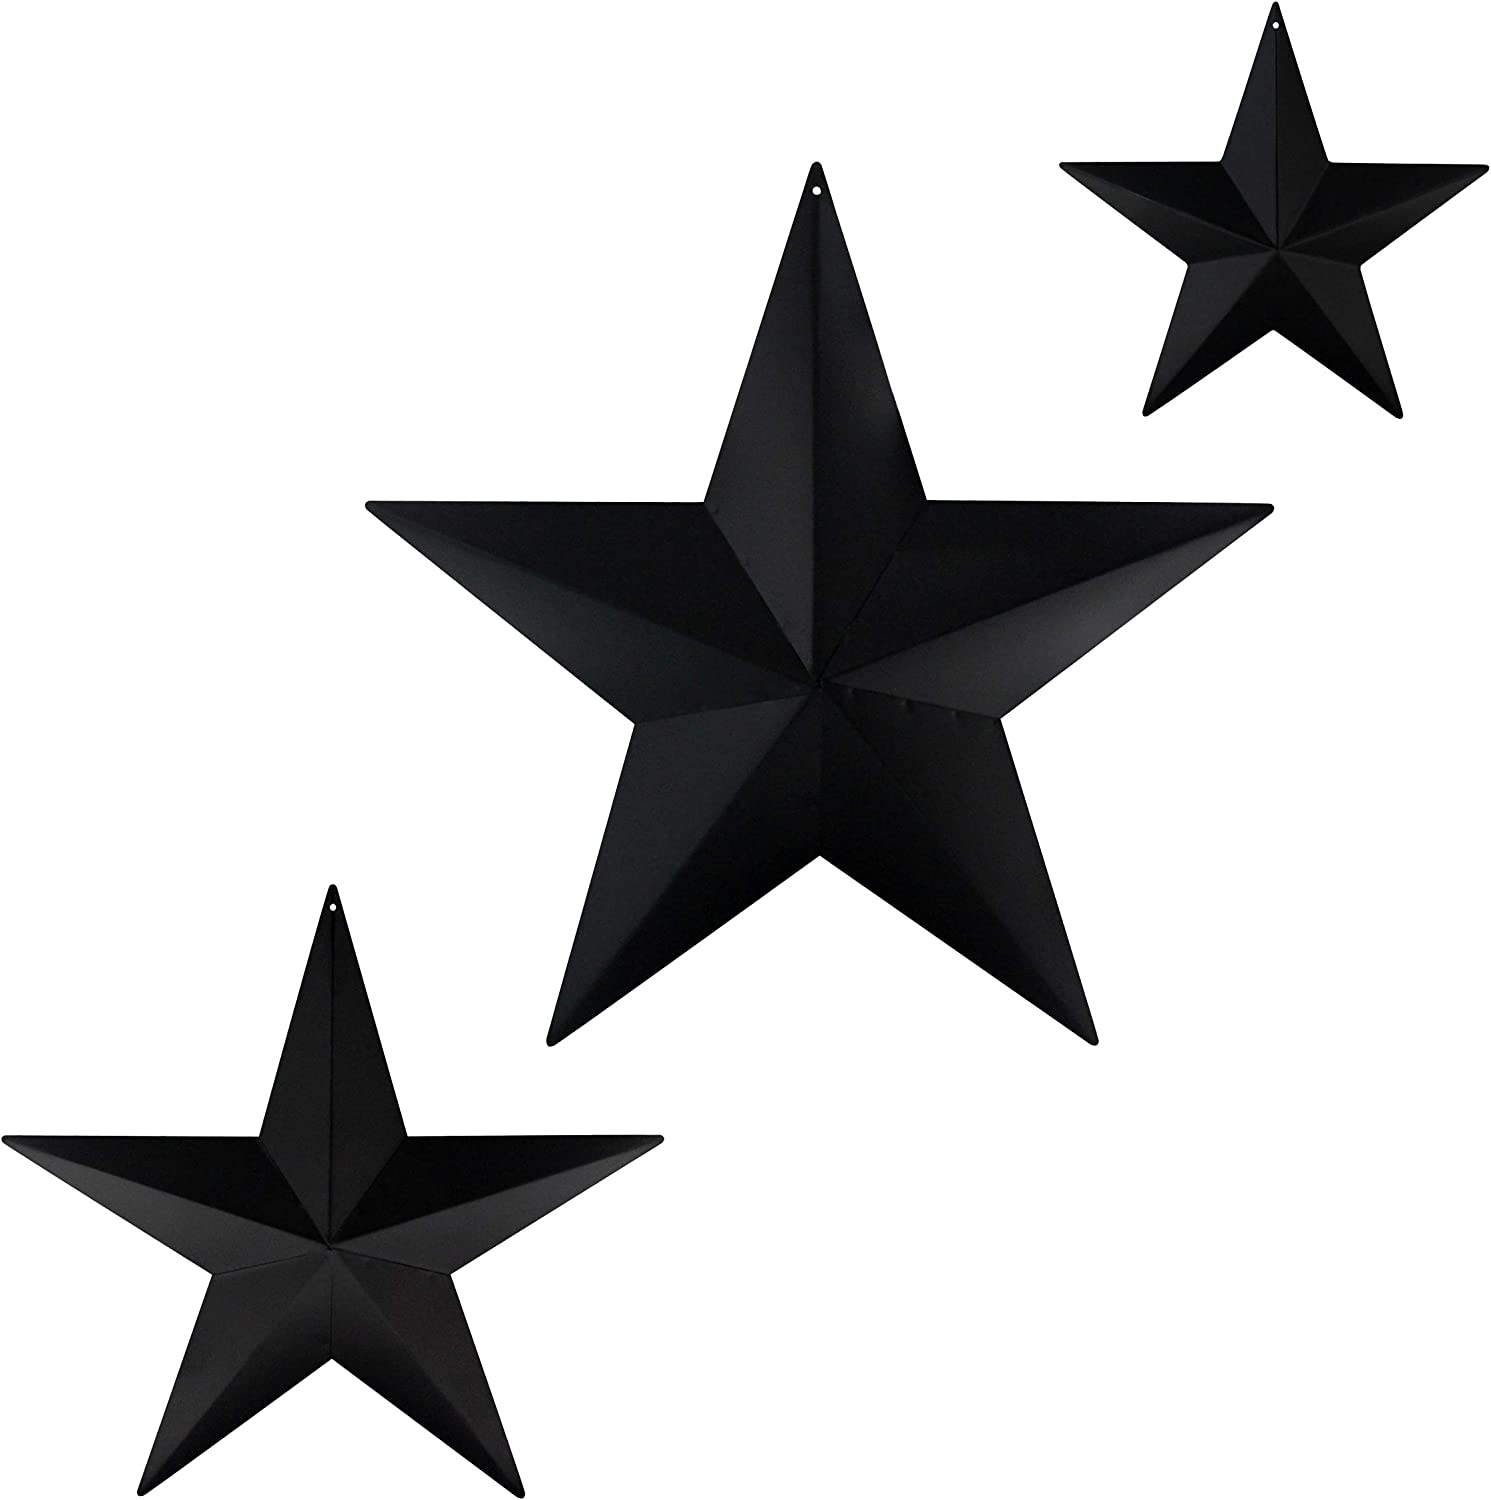 CVHOMEDECO. Primitives Rustic Antique Vintage Gifts Metal Barn Star Wall/Door Decor, 12/8/5.5 Inch, 3 PCS/Set. (Matt Black)